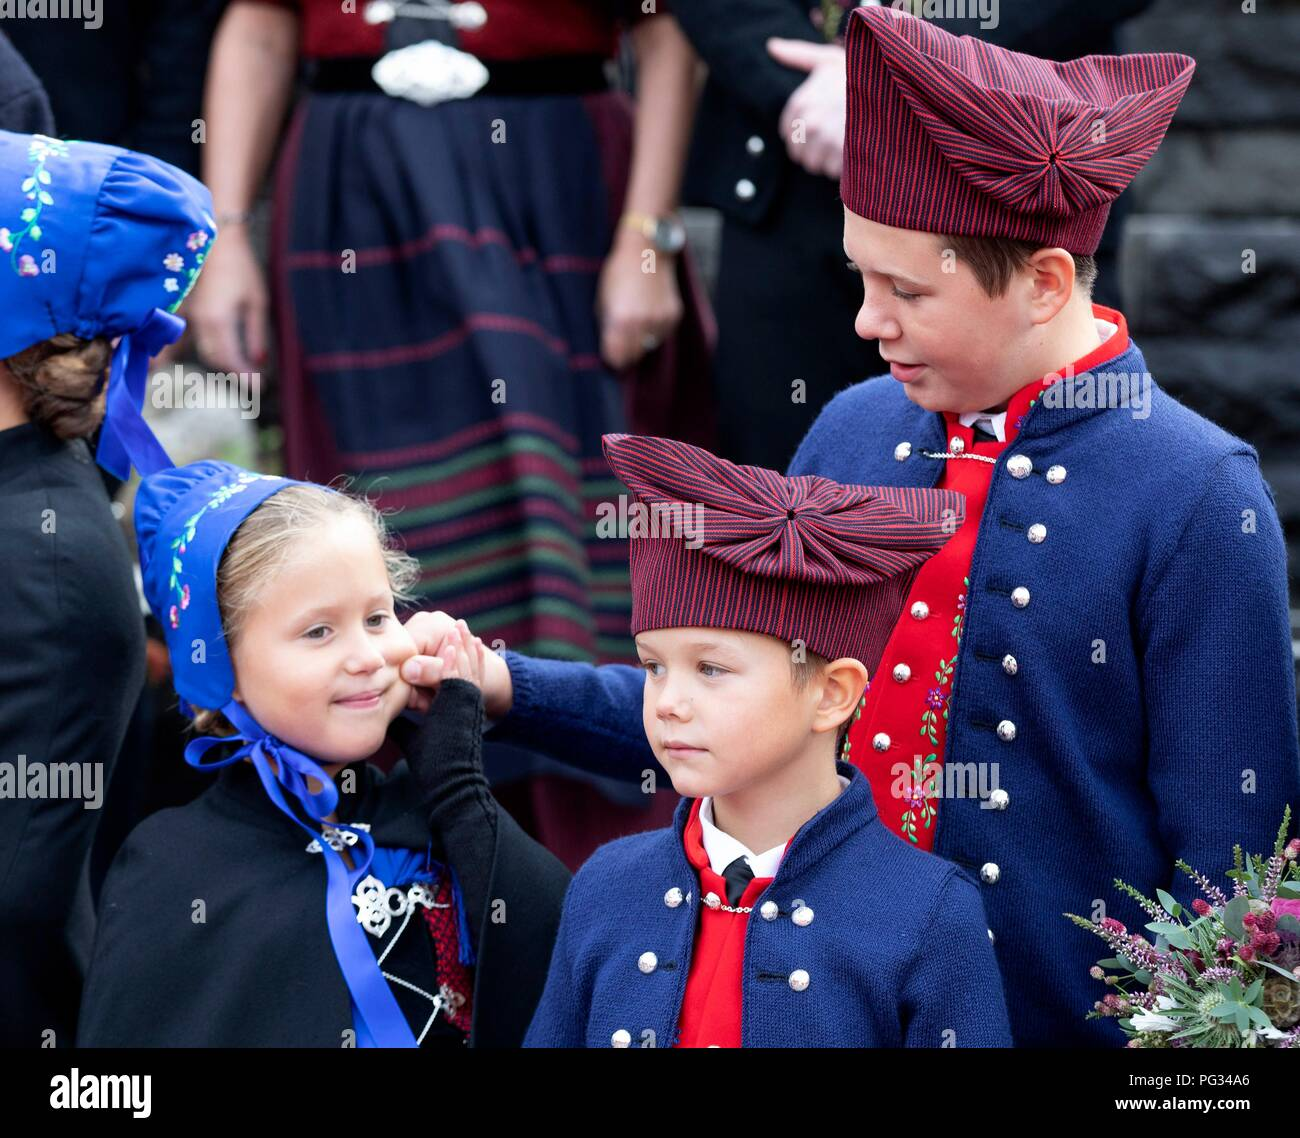 Torshavn, Faroe Islands, Denmark. 23rd Aug, 2018. Prince Christian, Prince Vincent and Princess Josehpine of Denmark arrive with the The Royal Ship, HDMY Dannebrog at Bursatangi, on August 23, 2018, on the 1st of the 4 days visit to the Faroe Islands Photo : Albert Nieboer/ Netherlands OUT/Point de Vue OUT | Credit: dpa/Alamy Live News - Stock Image